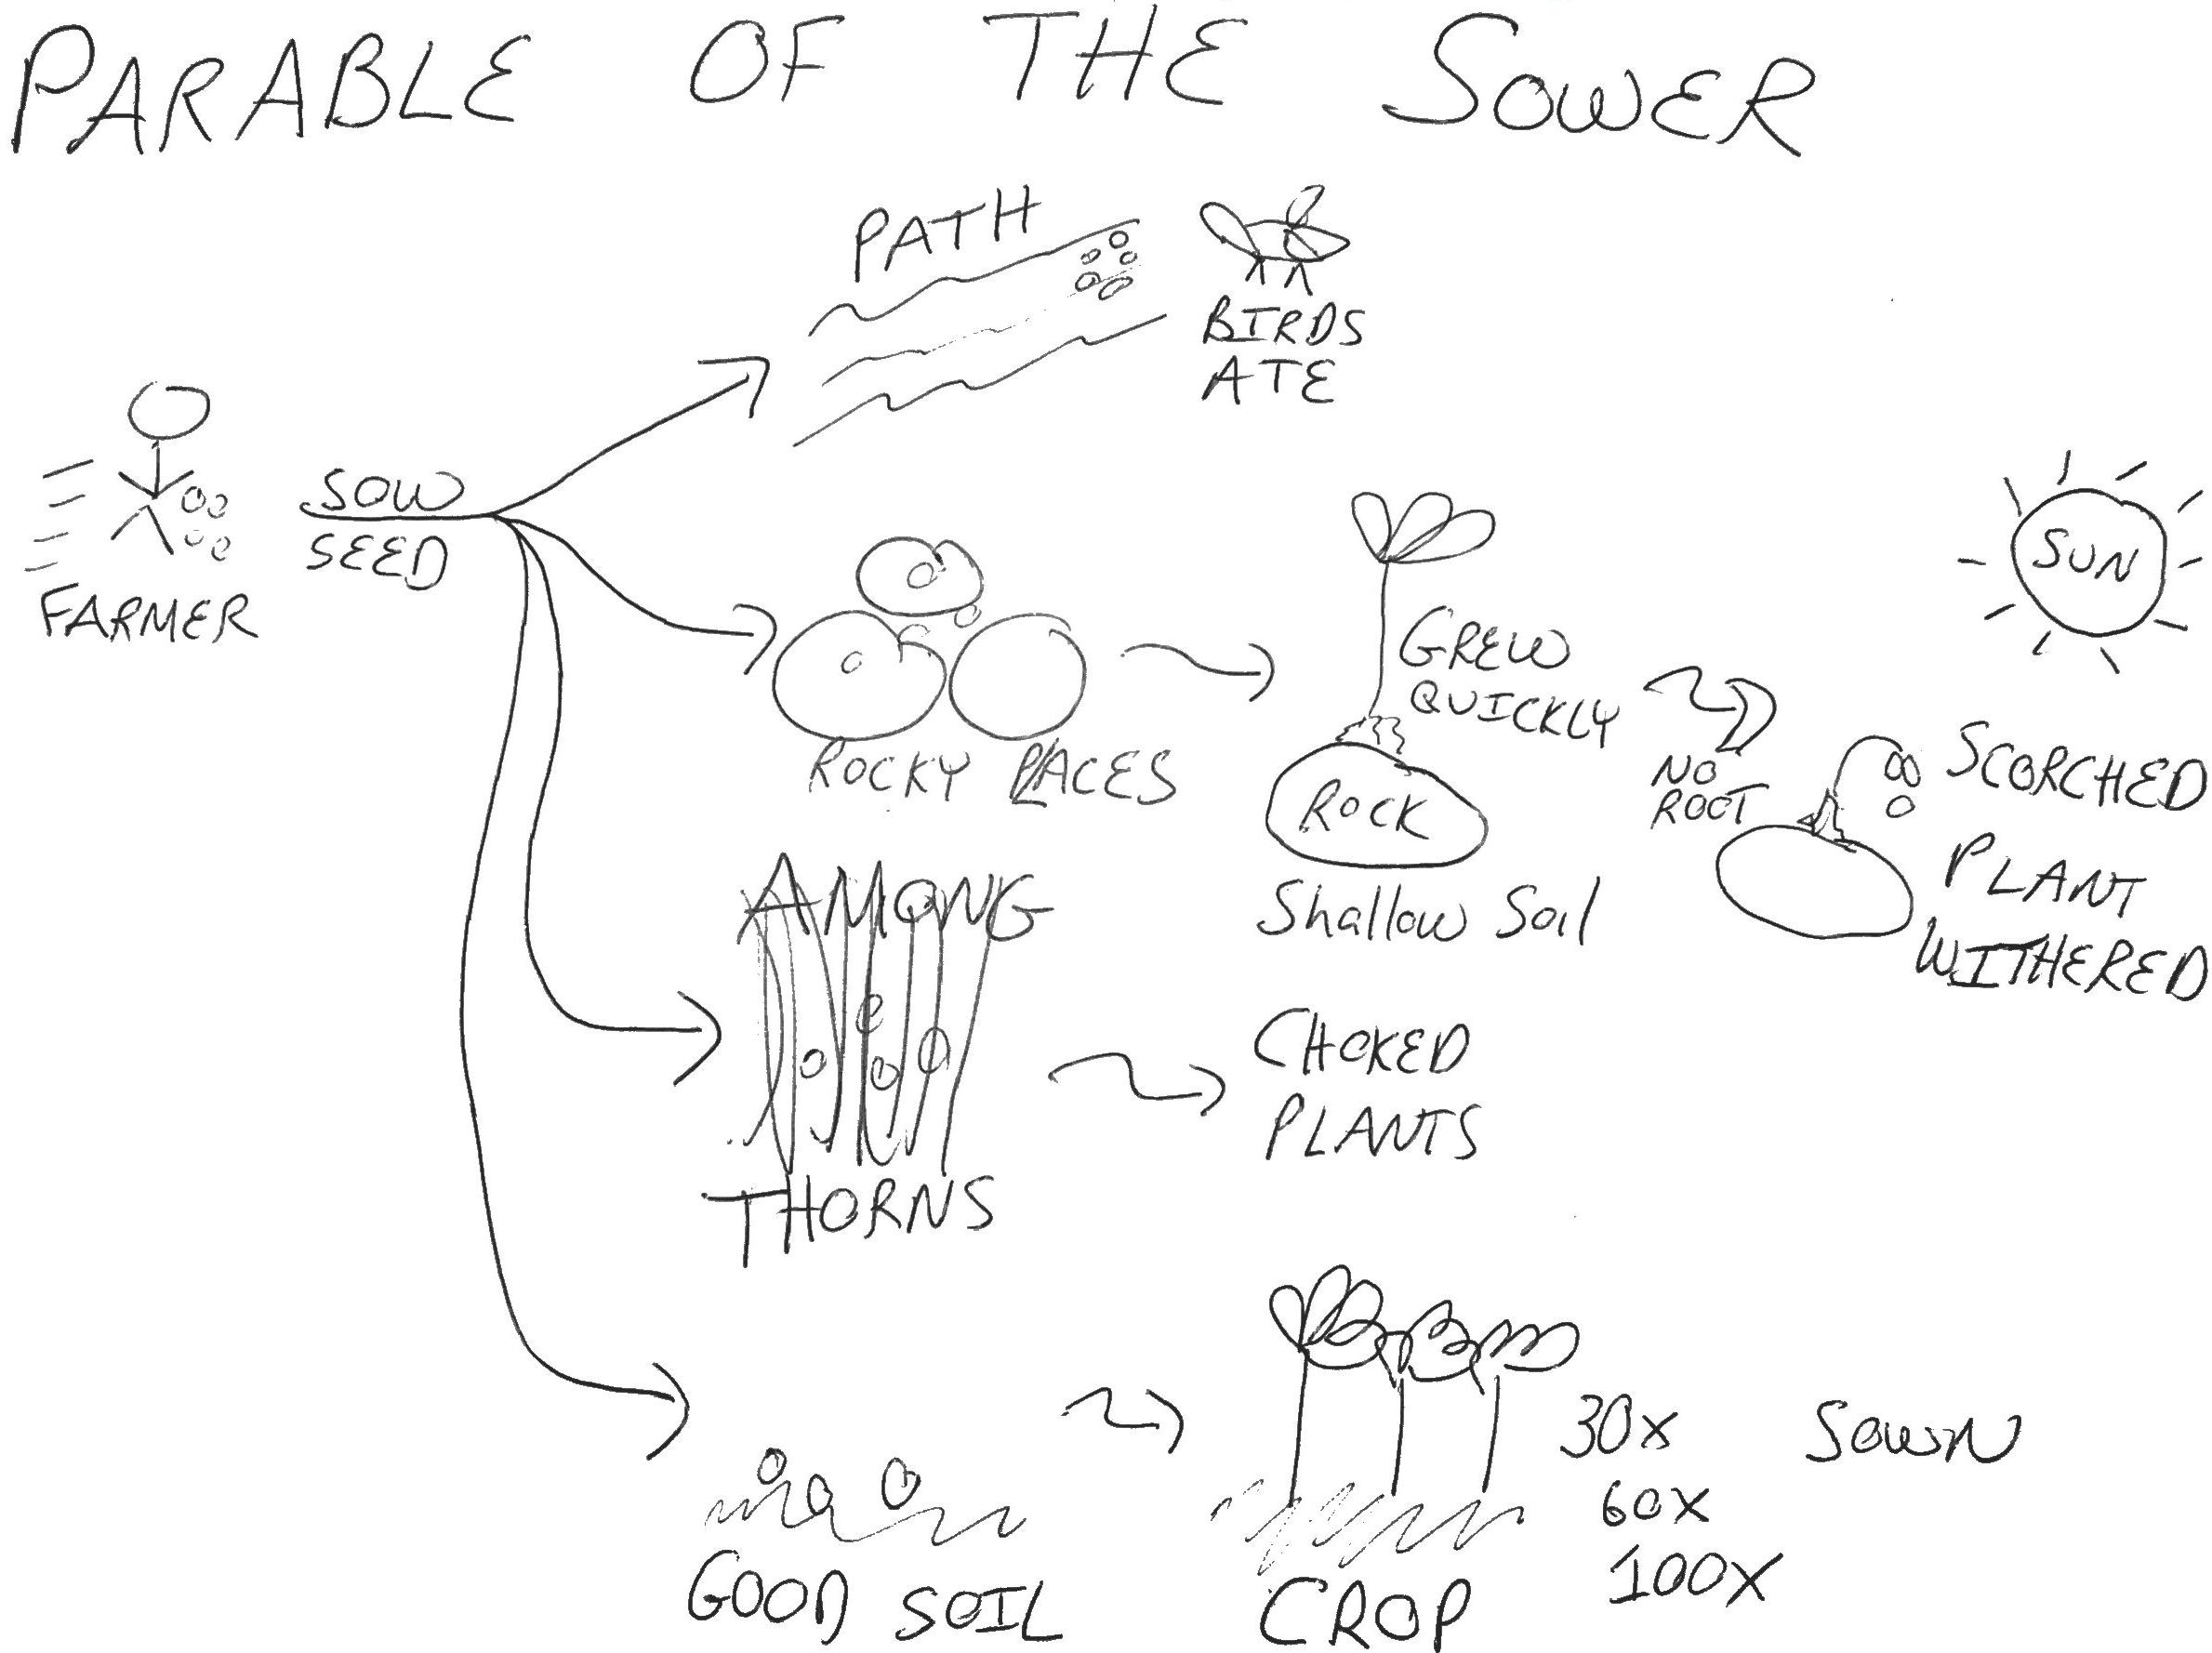 17 Best Images Of Parable Of The Sower Worksheets